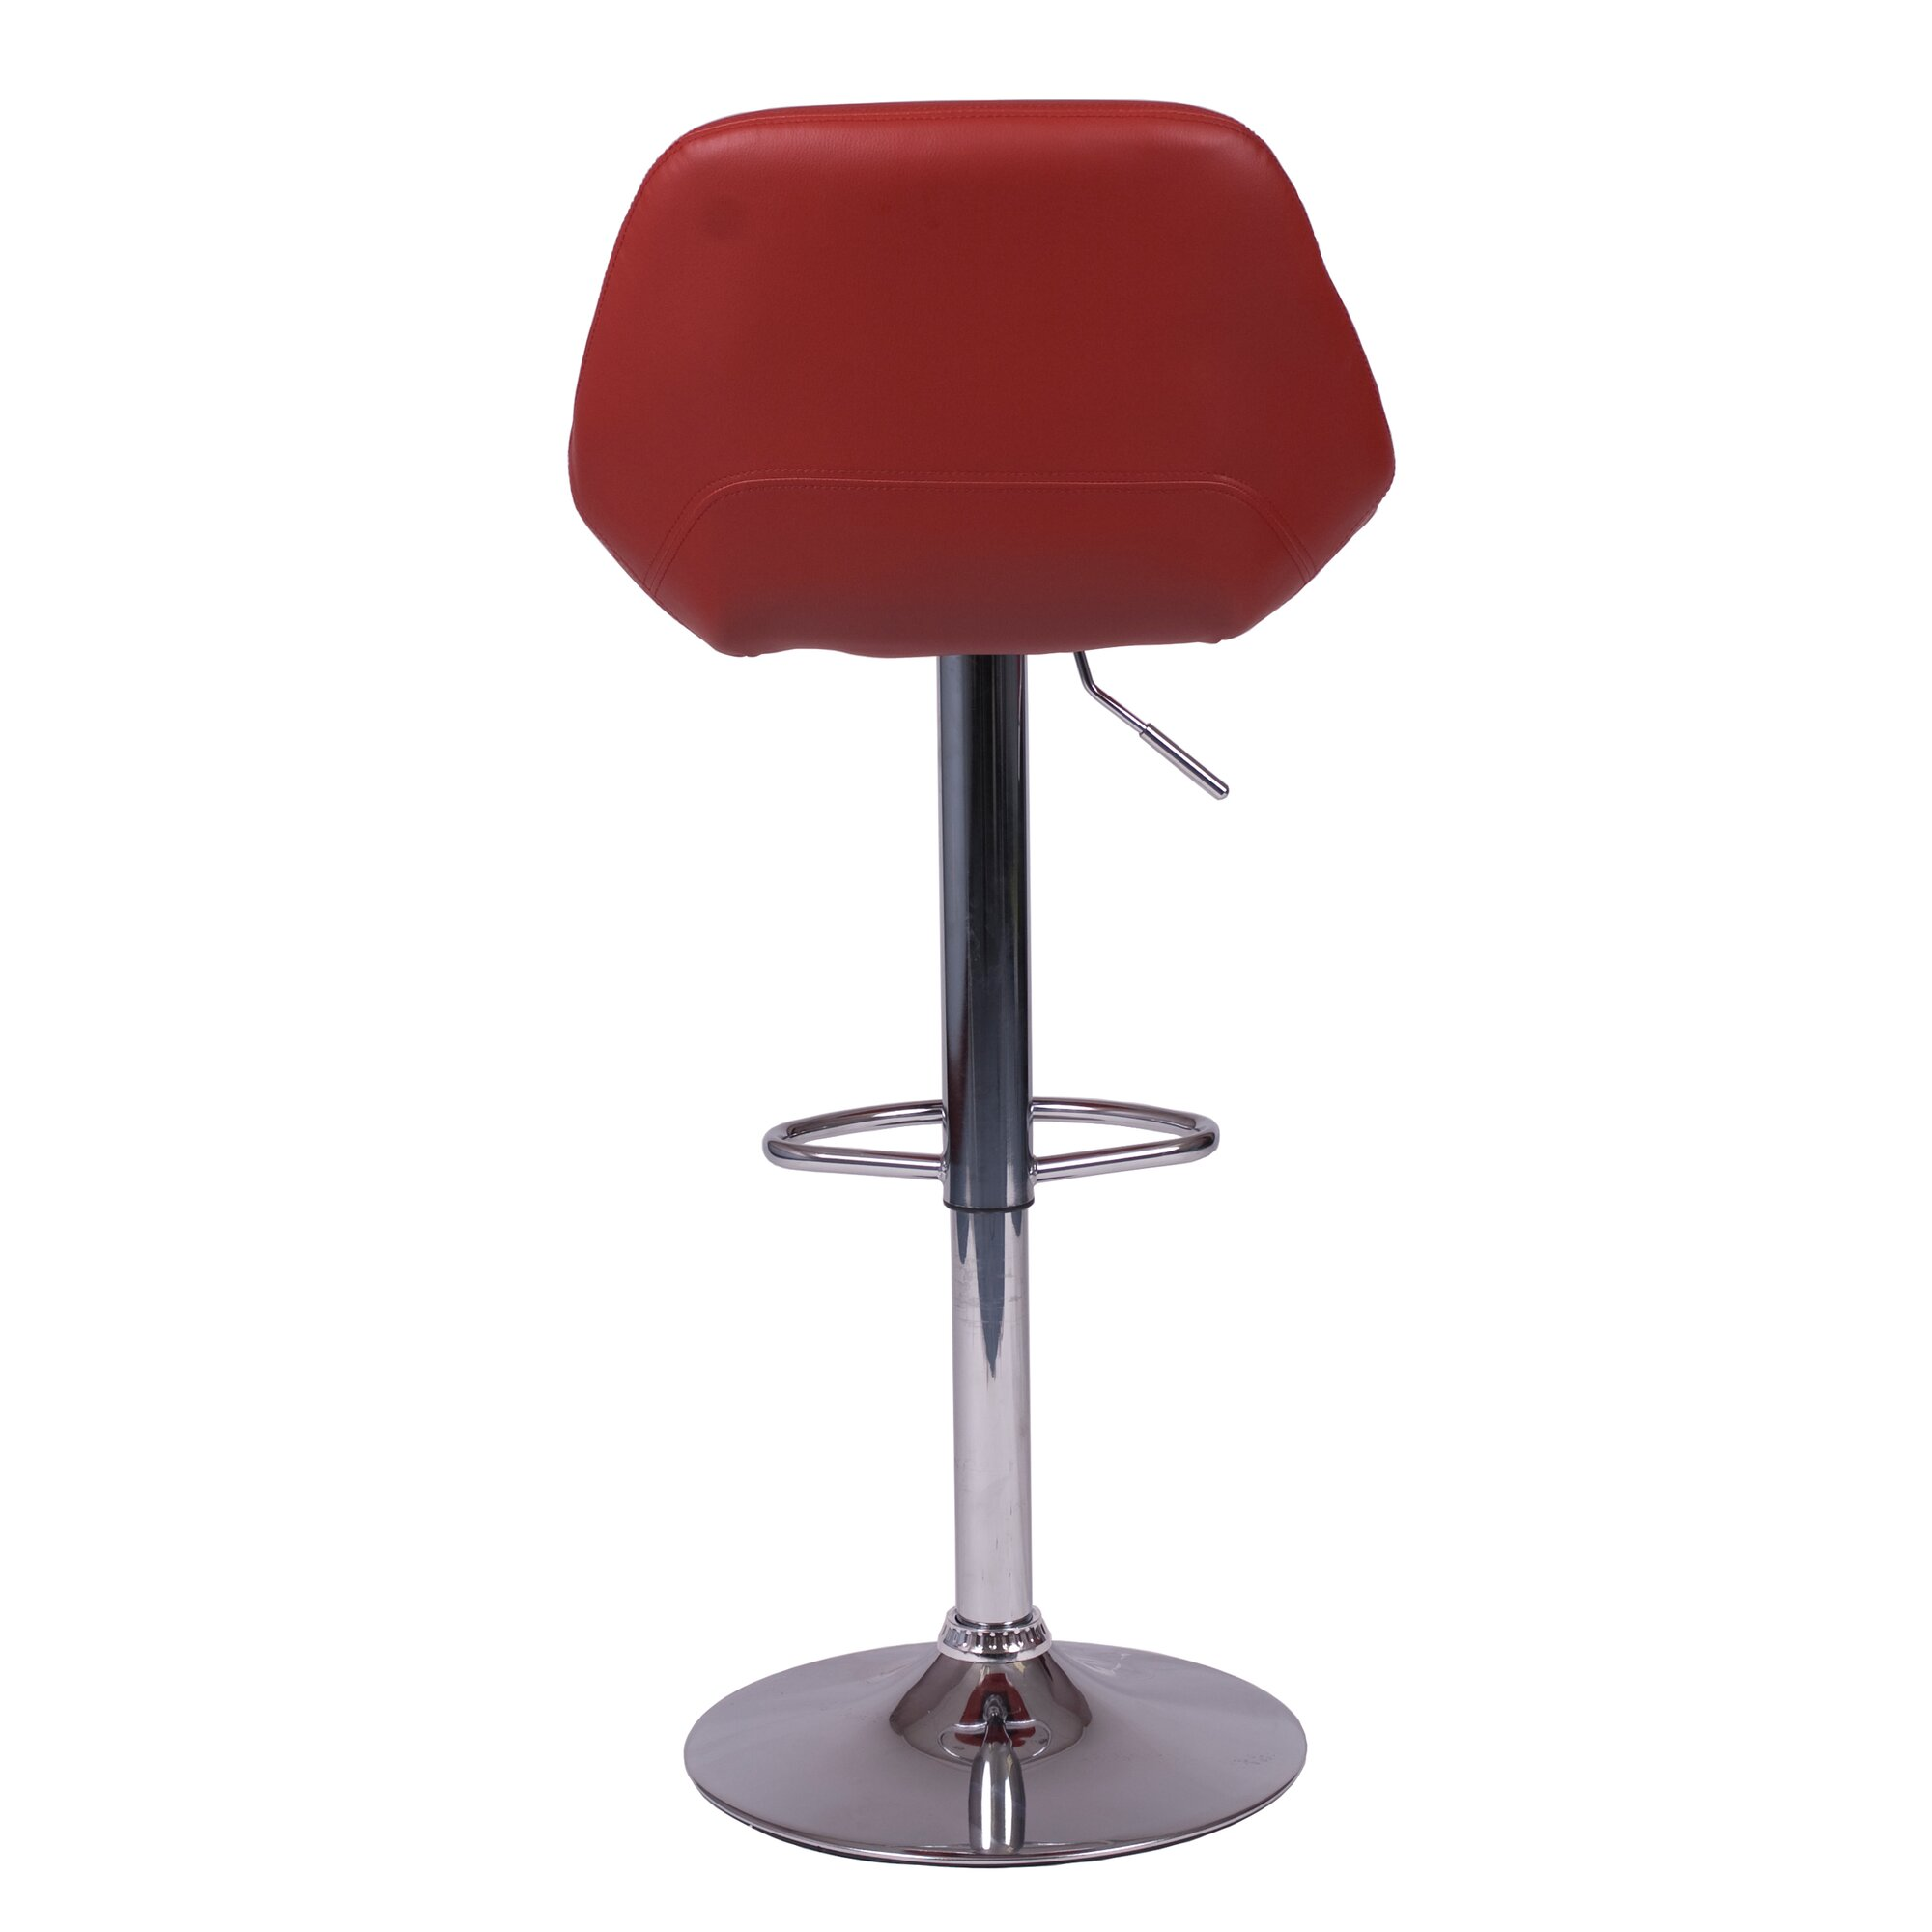 Roundhill Furniture Adjustable Height Swivel Bar Stool